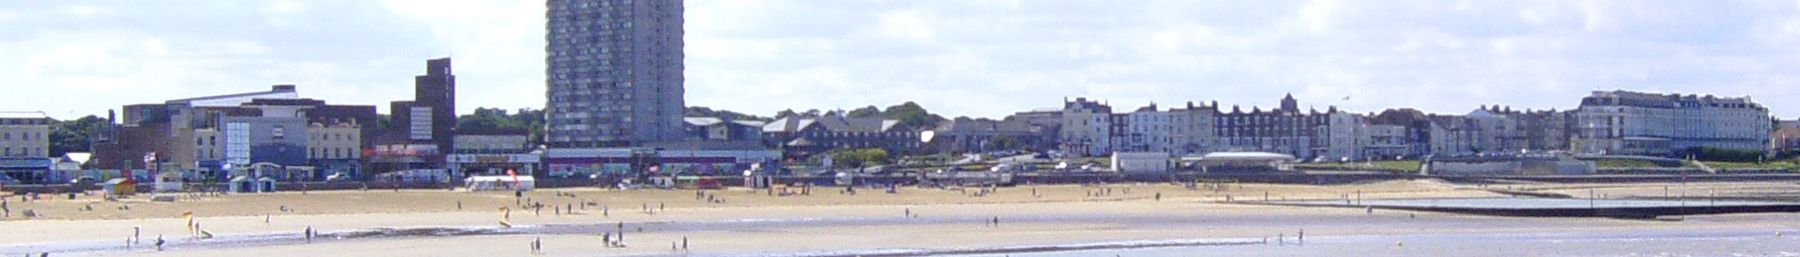 Margate banner View from Pier.JPG